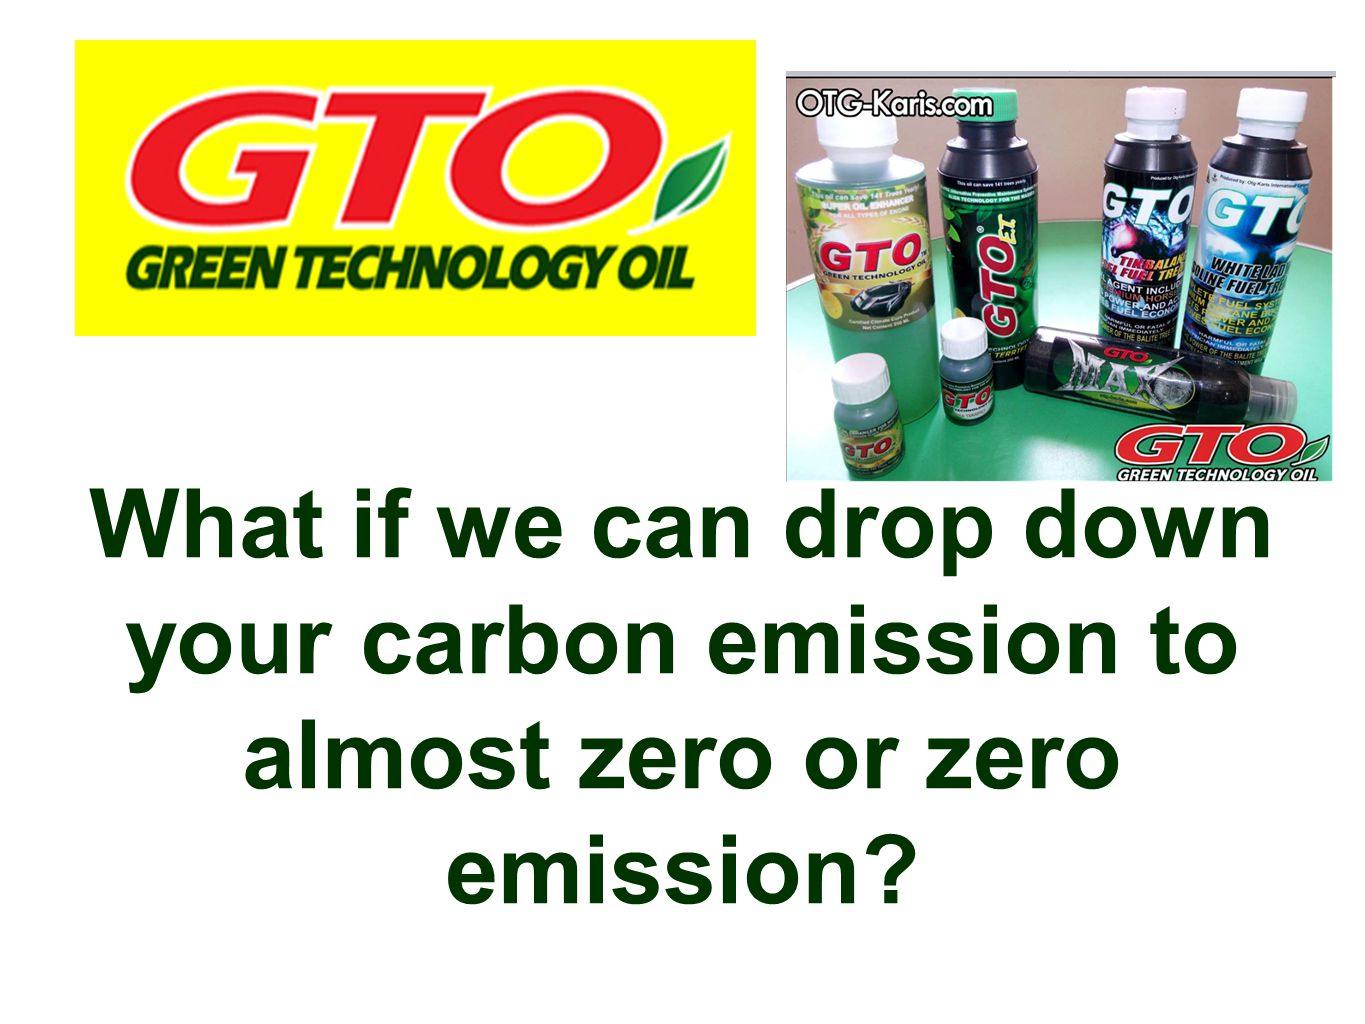 What if we can drop down your carbon emission to almost zero or zero emission